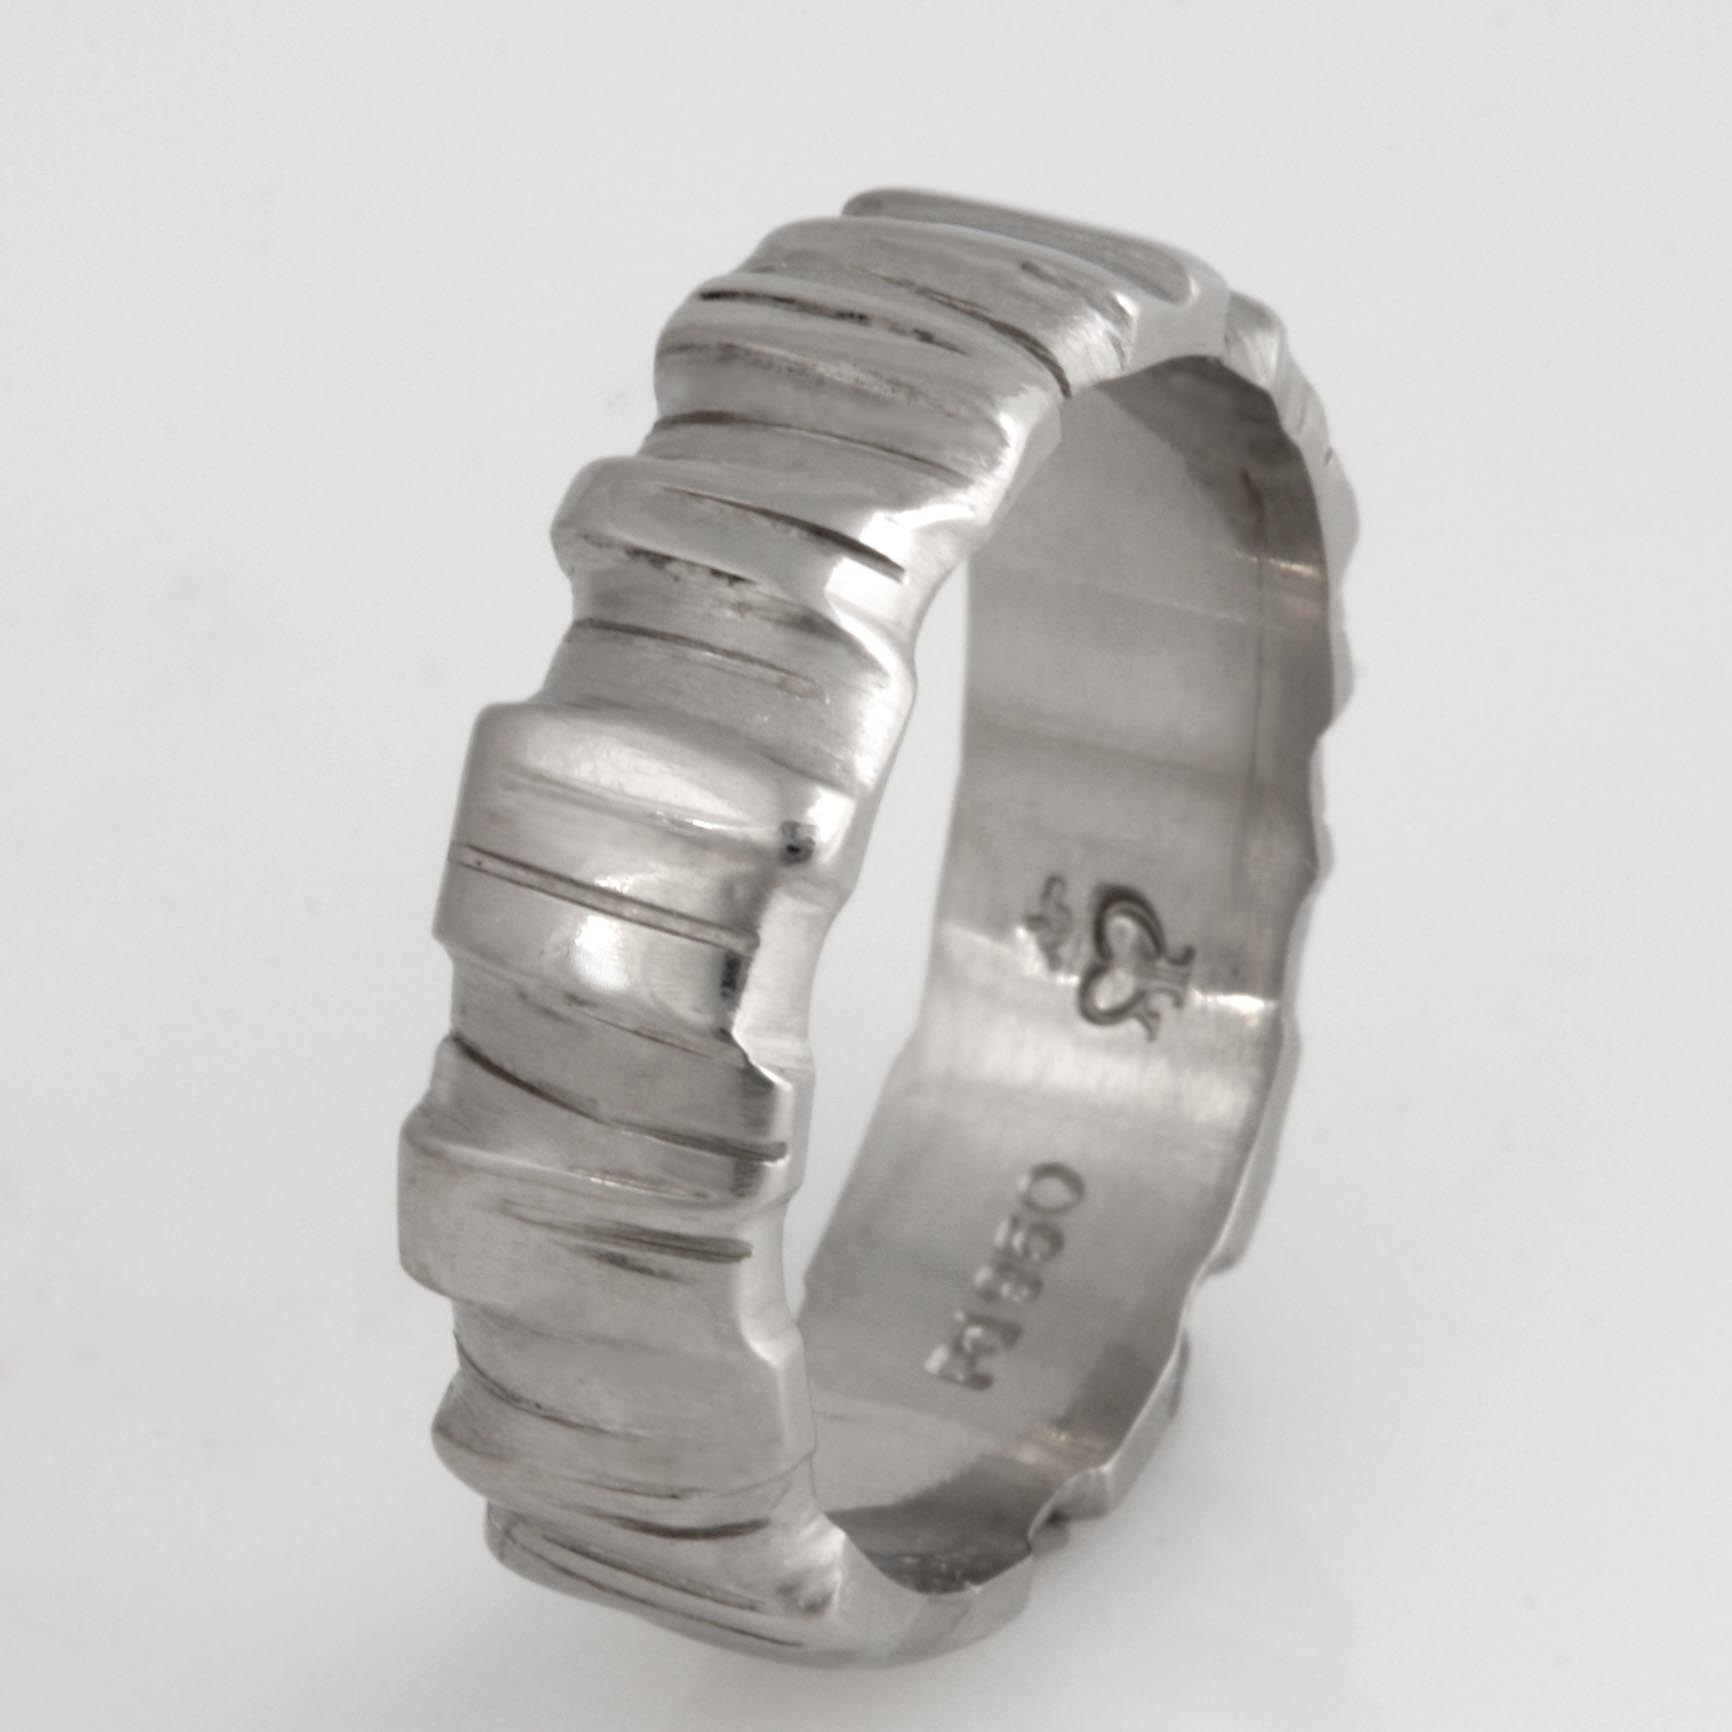 Handmade palladium wedding ring